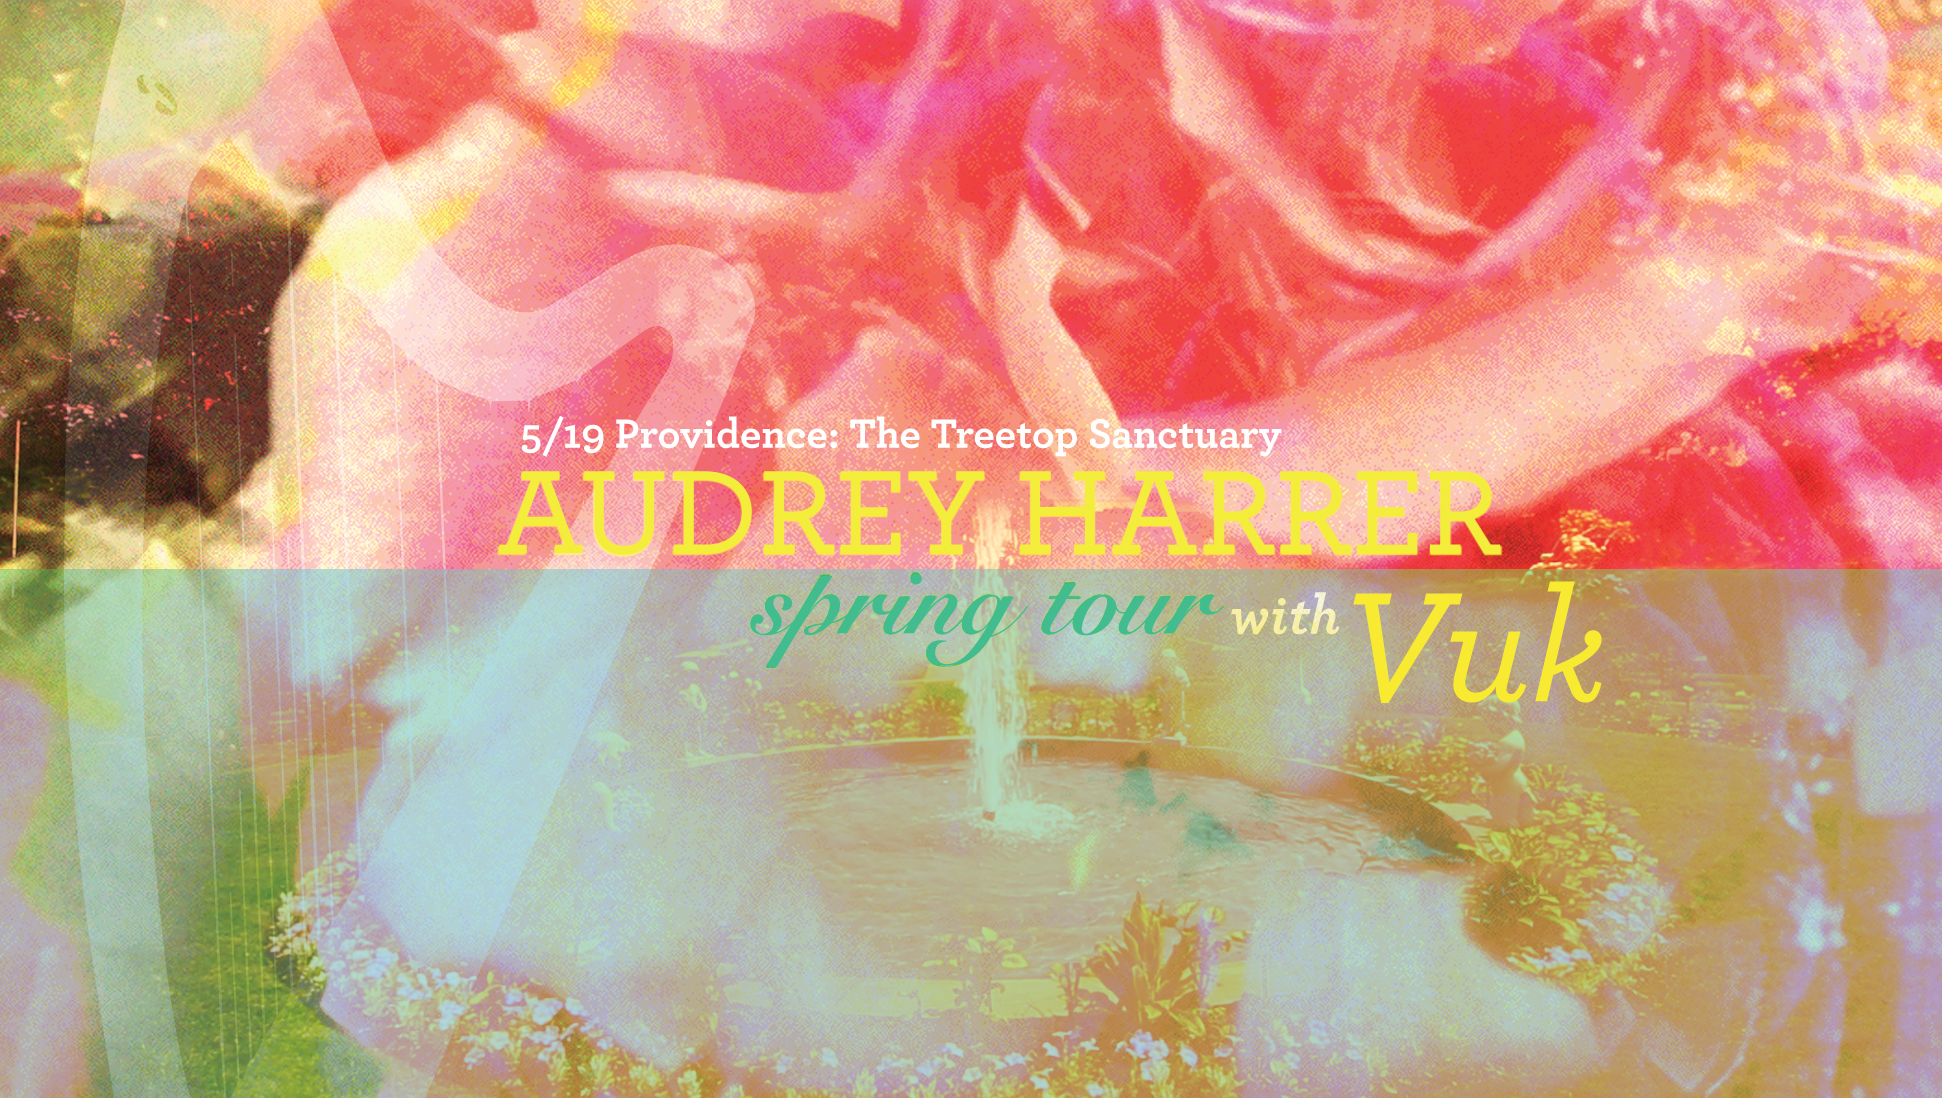 5/19 PROVIDENCE: The Treetop Sanctuary  w/ Vuk   https://www.facebook.com/events/1696217837309676/